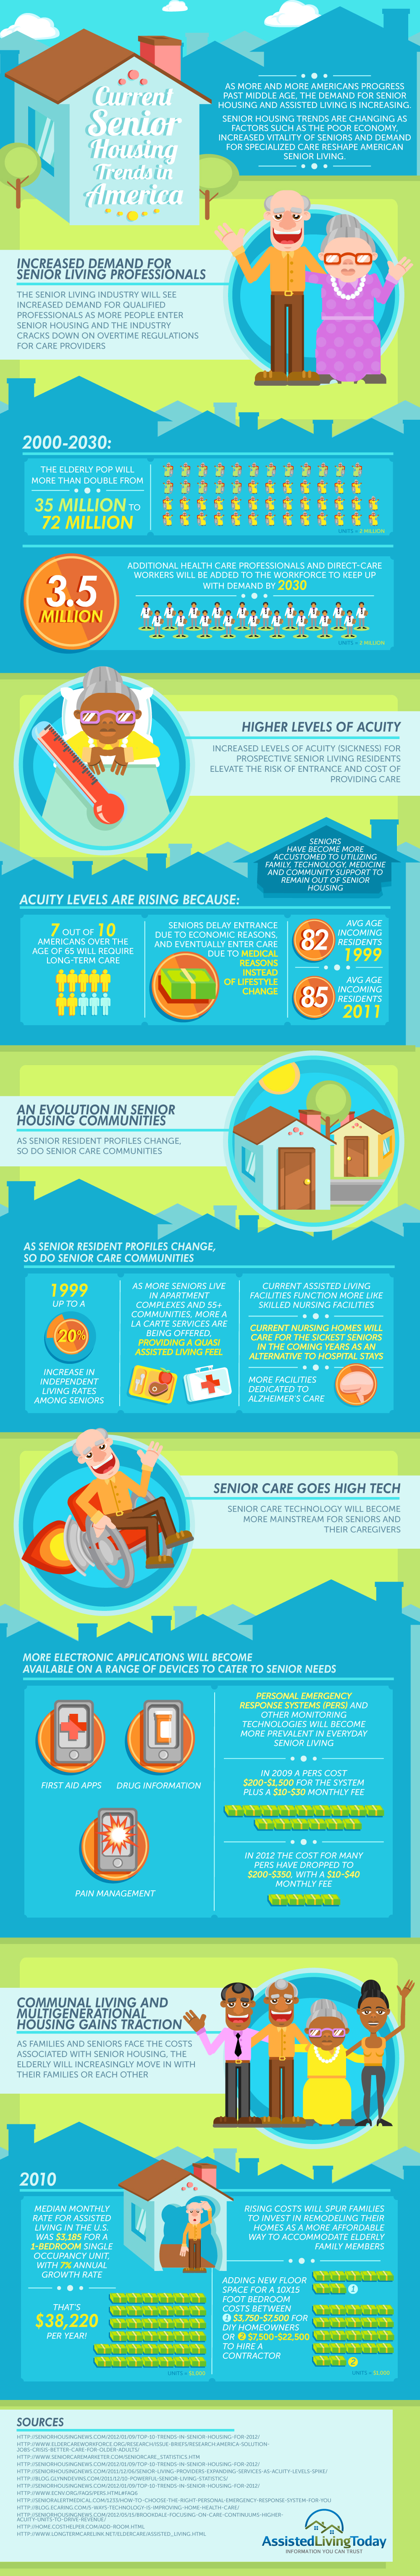 senior citizen housing and senior living trends in America